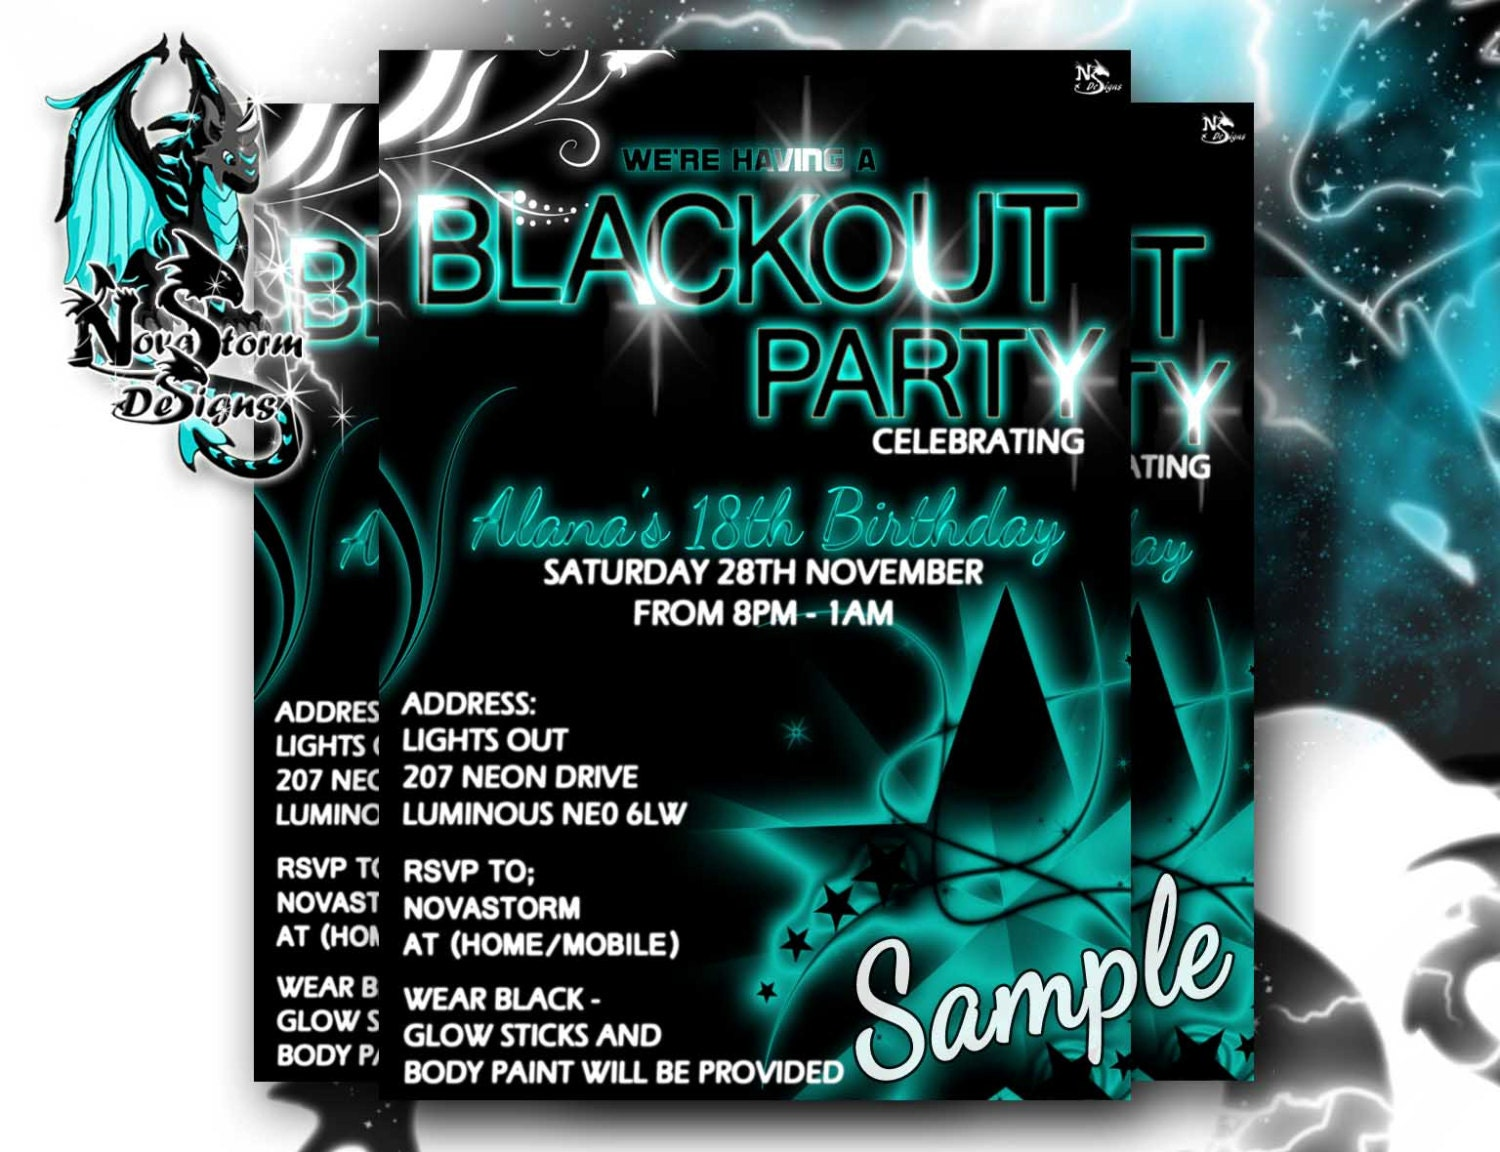 Blackout Party Invitations UV Glow Dance Party Blacklight